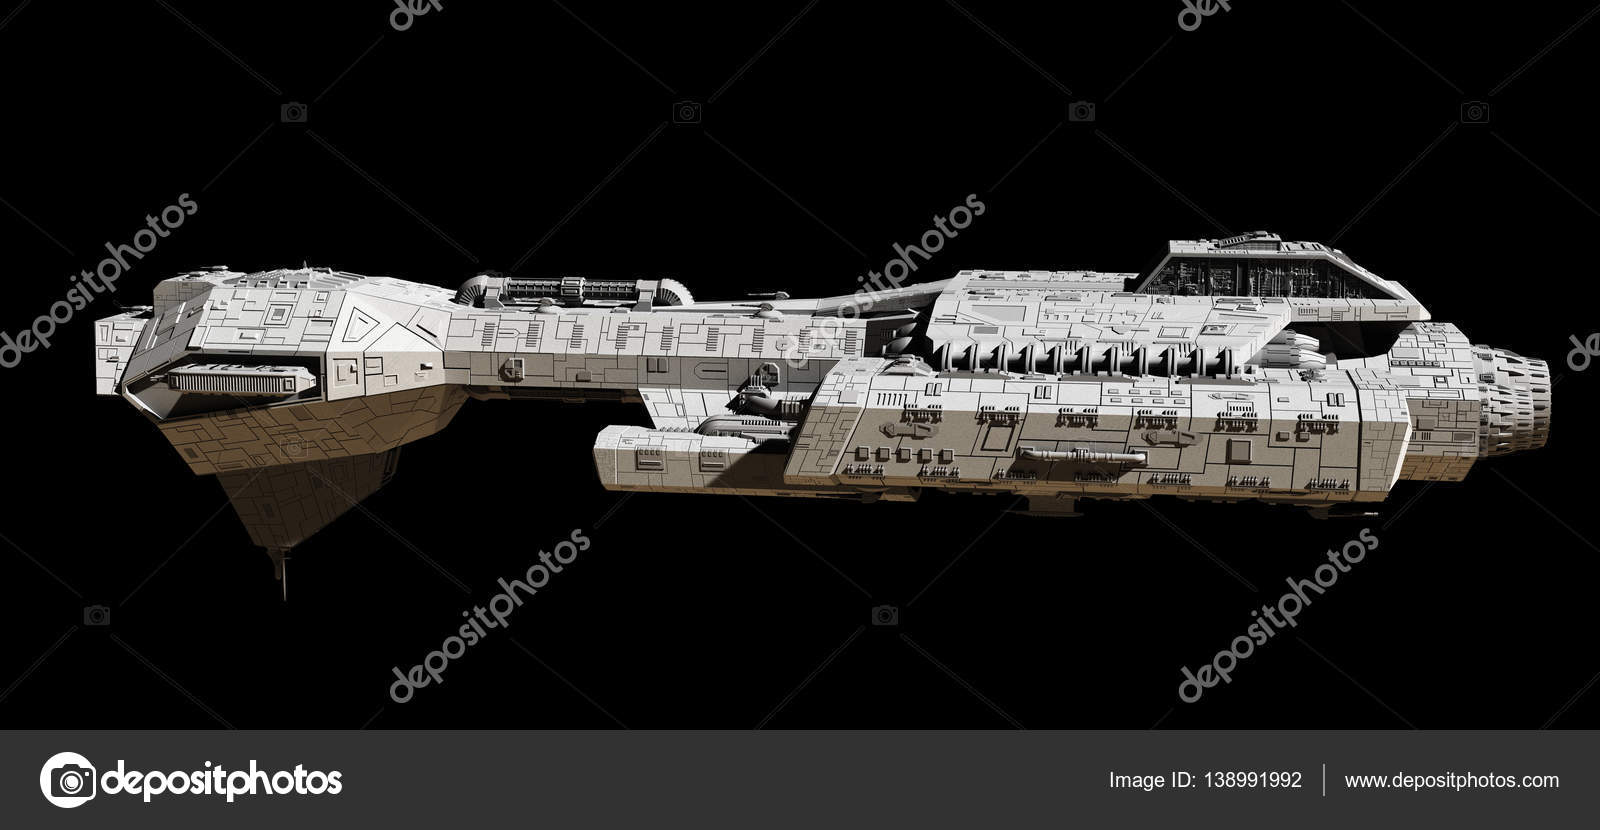 space ship on black side view u2014 stock photo algolonline 138991992